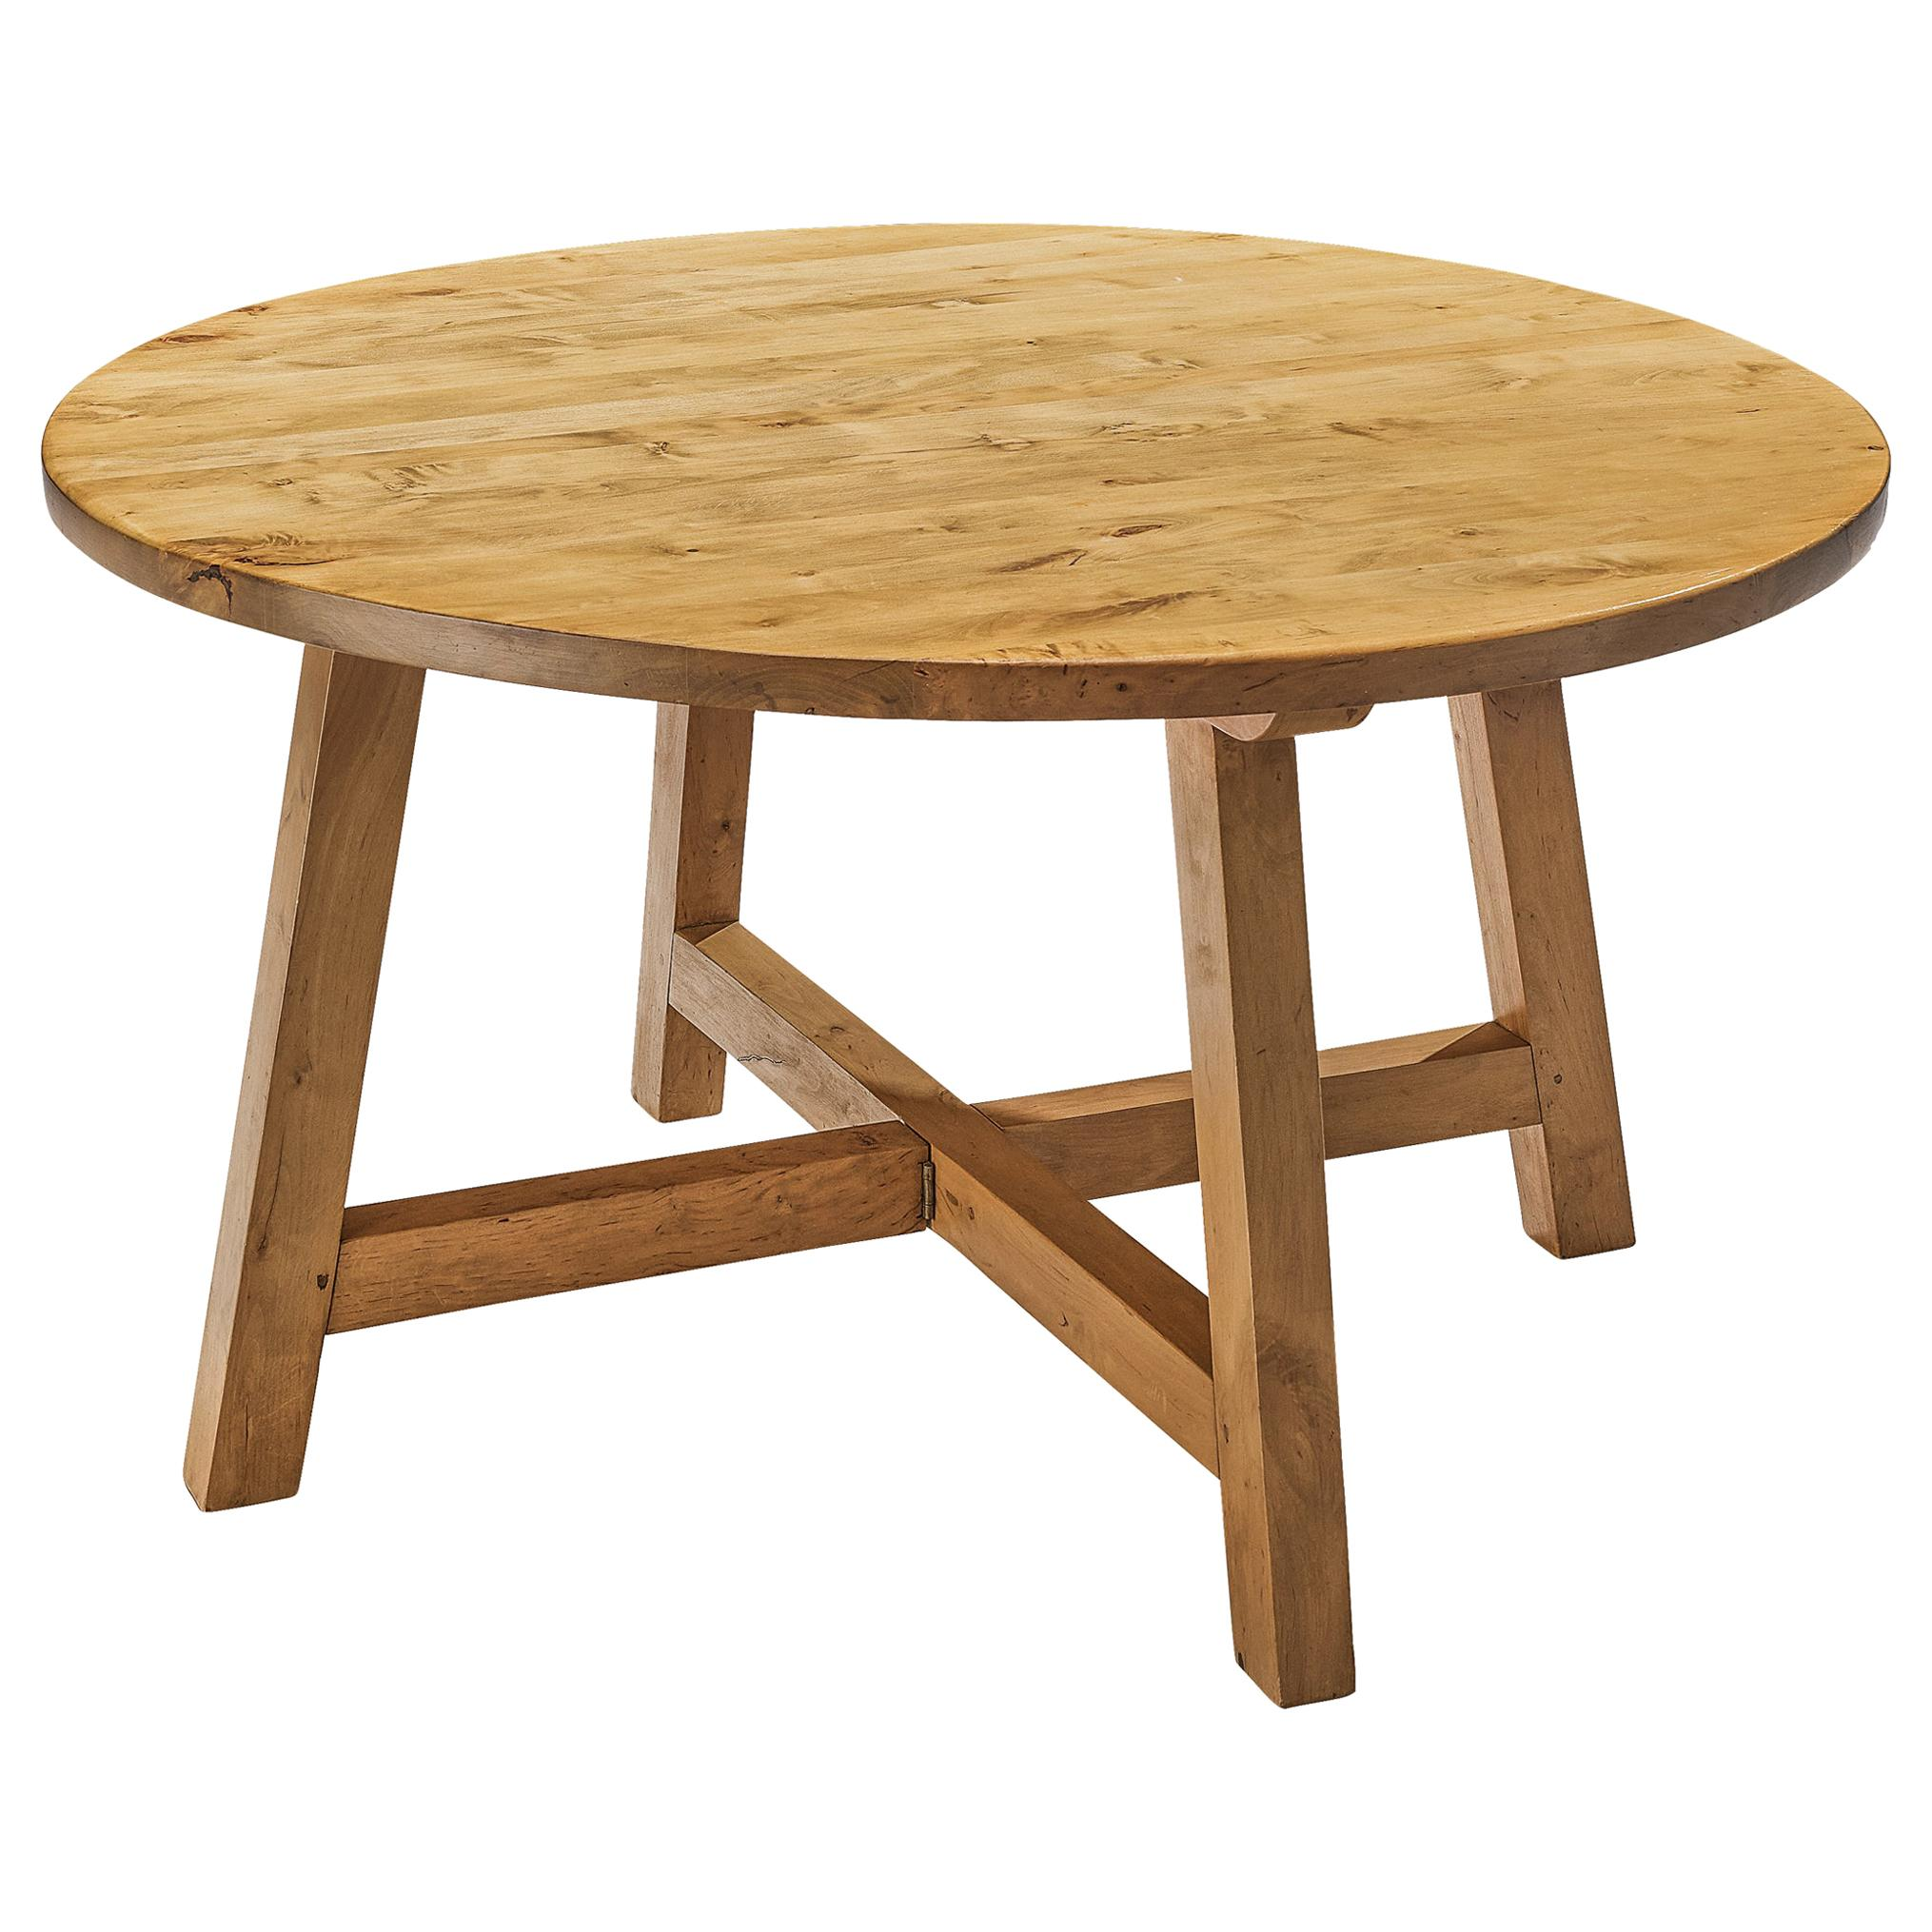 Round Dining Table in Pine